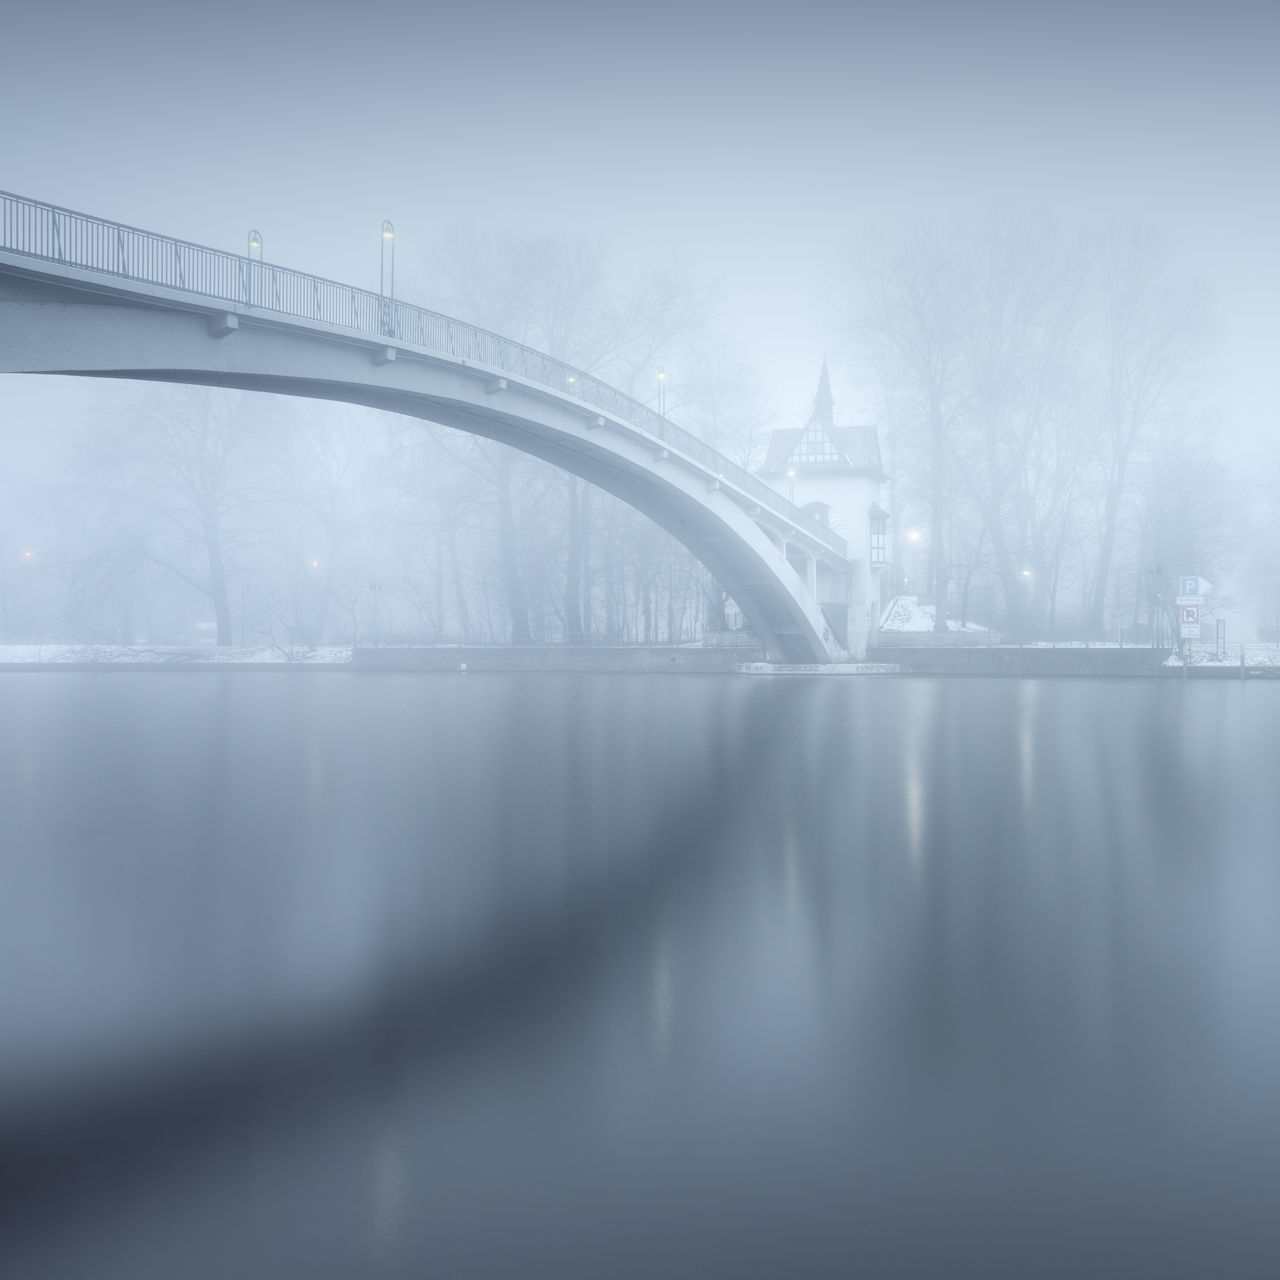 bridge over water Abbey Bridge Berlin Bridge Bridge - Man Made Structure City Day Fine Art Fog Foggy Weather Germany Long Exposure Misty Muted Colors No People Outdoors Philipp Dase Reflections In The Water Spree River Treptower Park Water